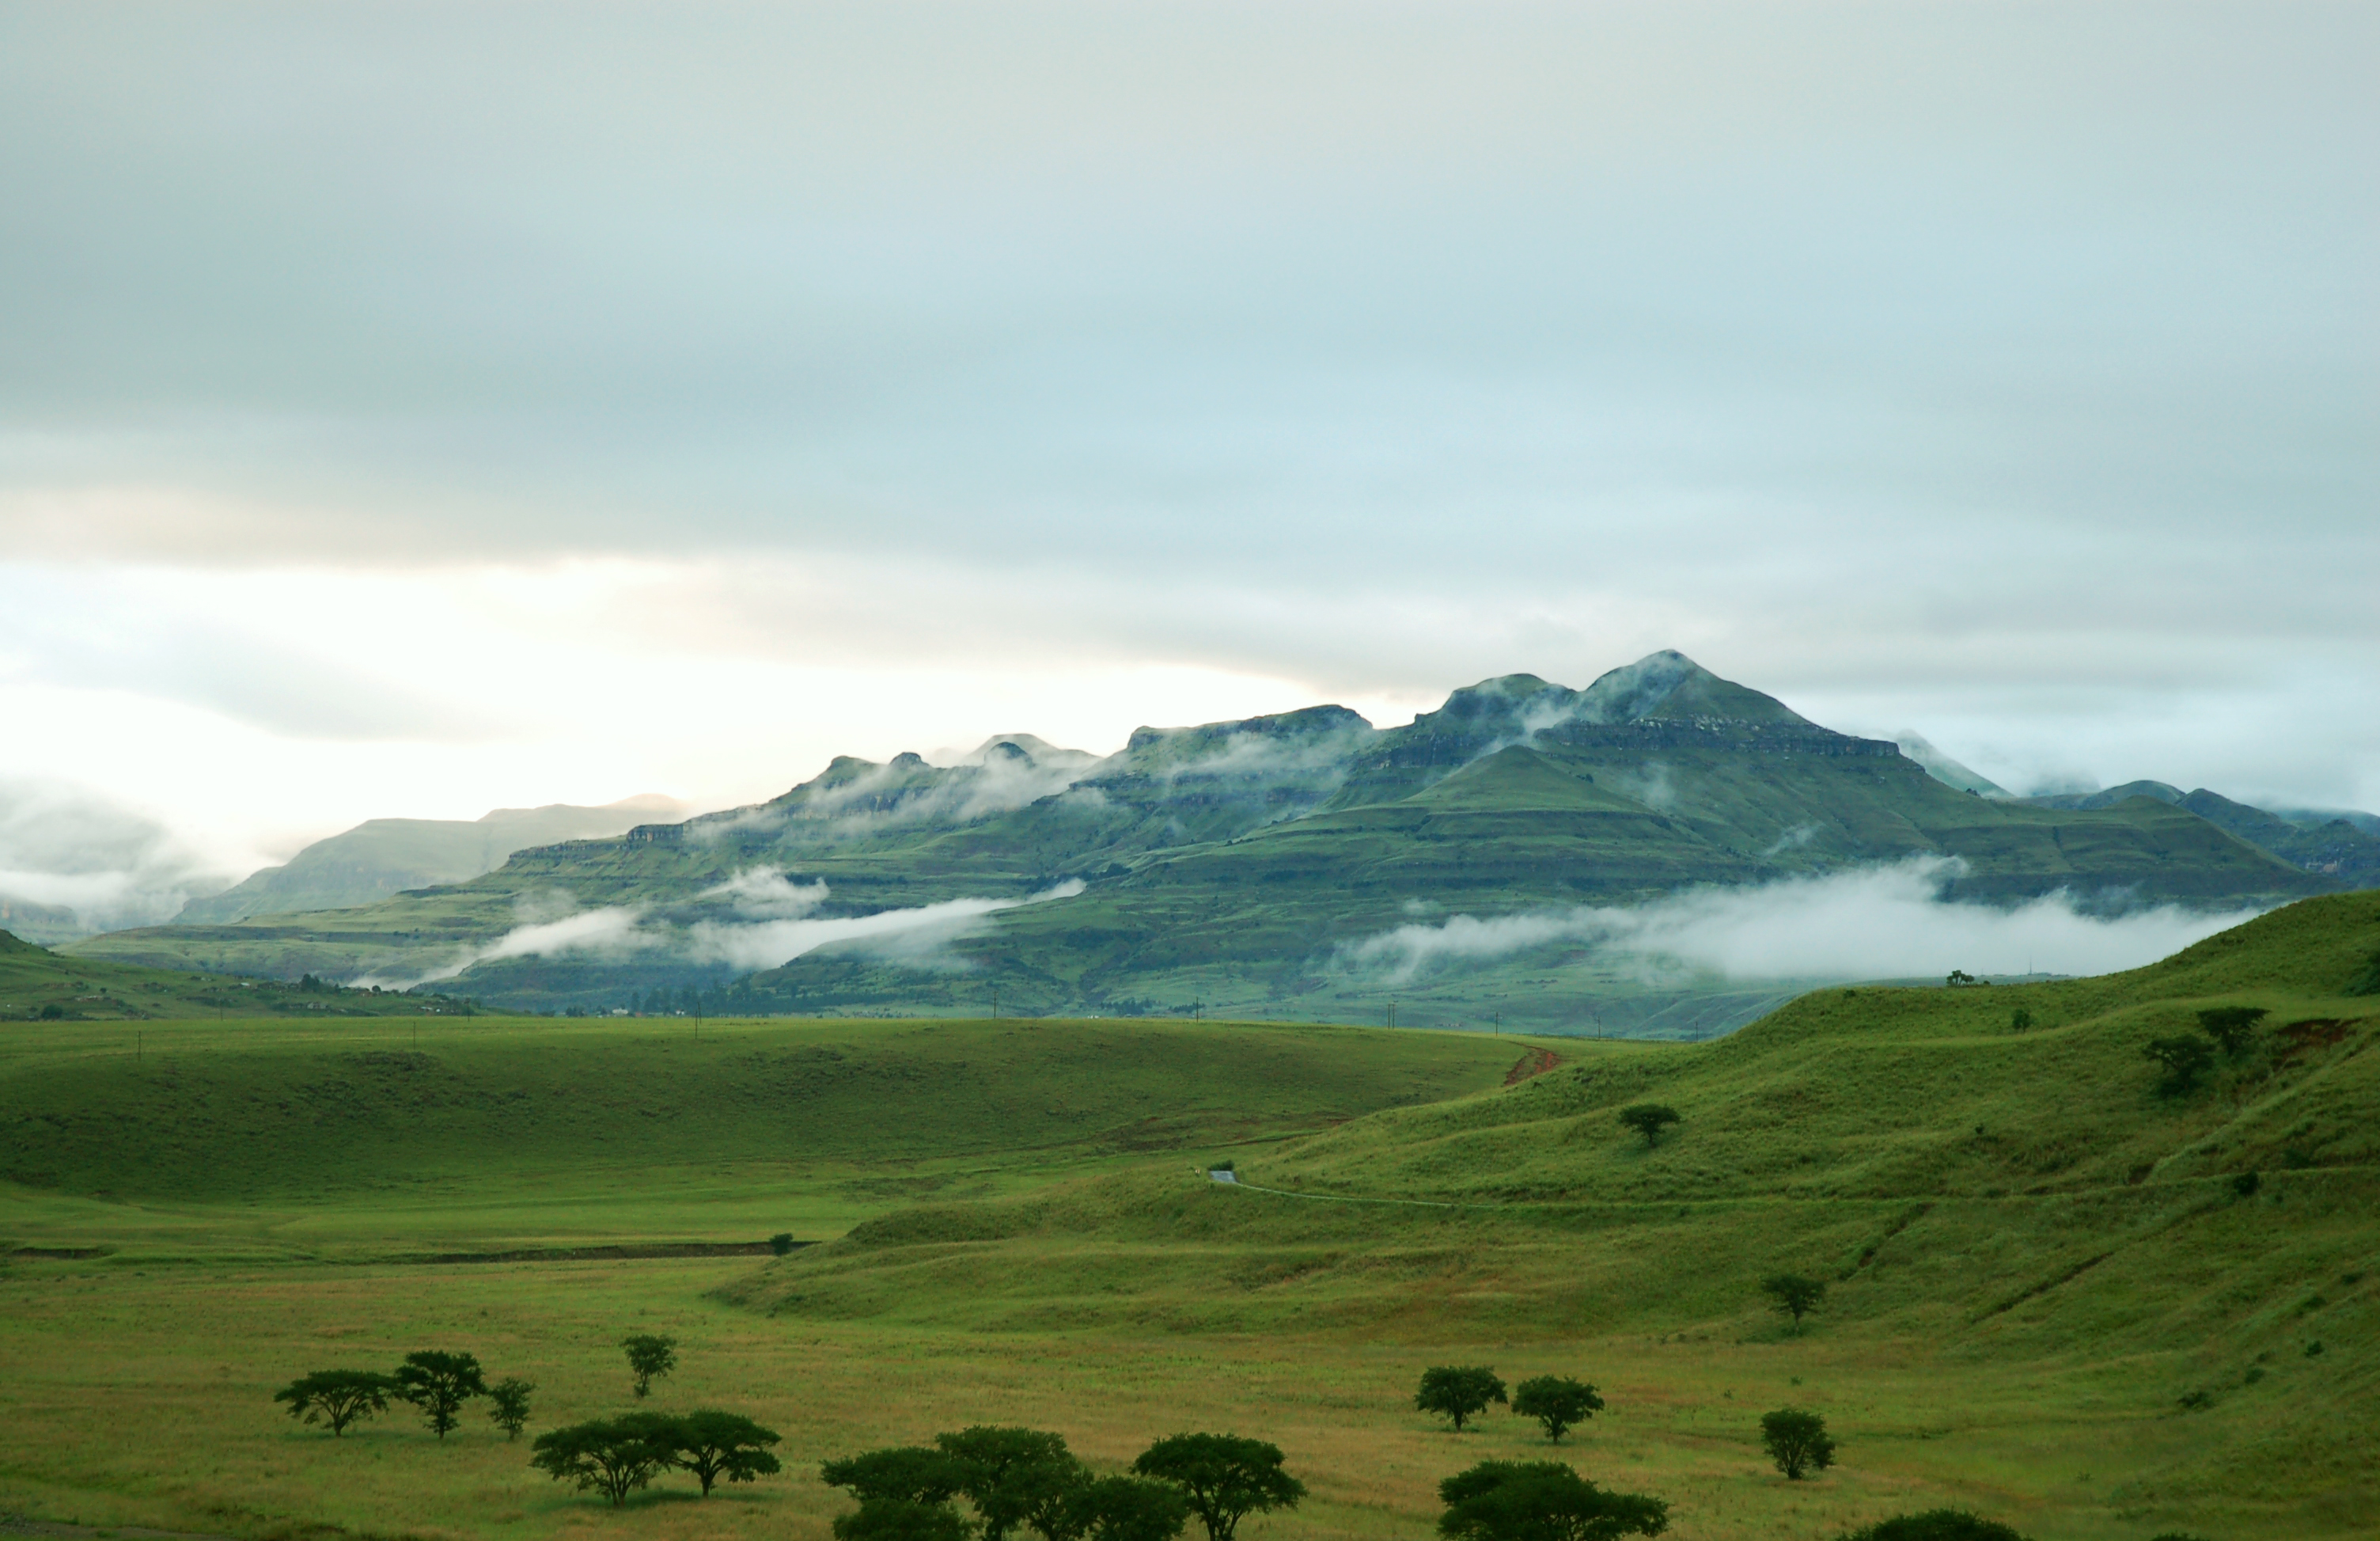 File:Hlalanathi, Northern Drakensberg.jpg - Wikimedia Commons